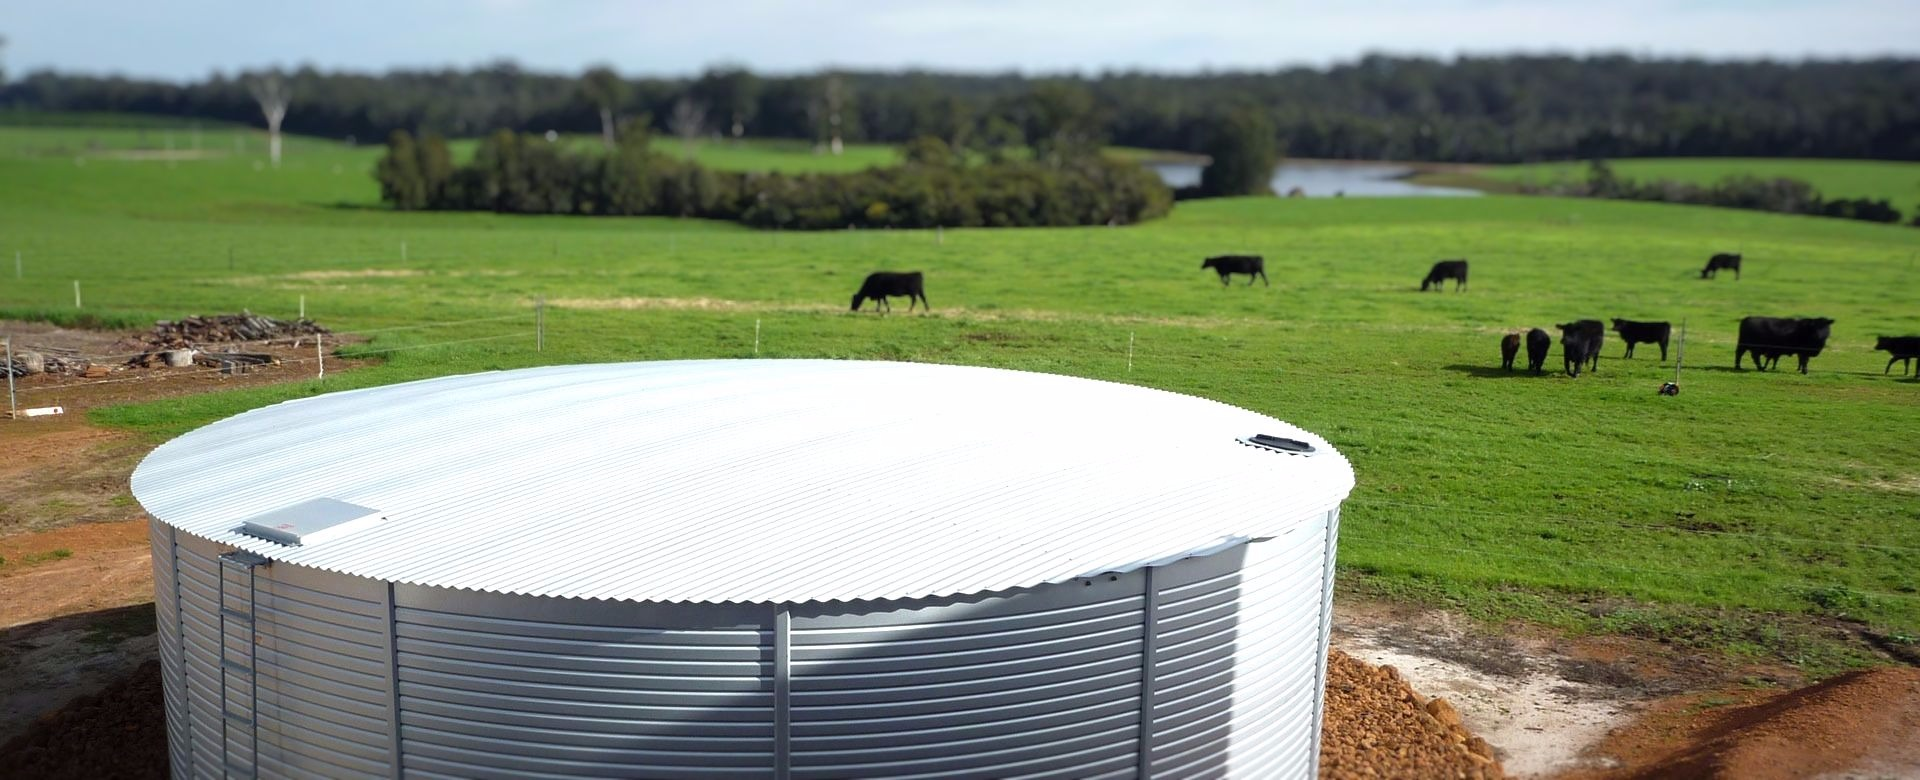 Water Tank at Farm